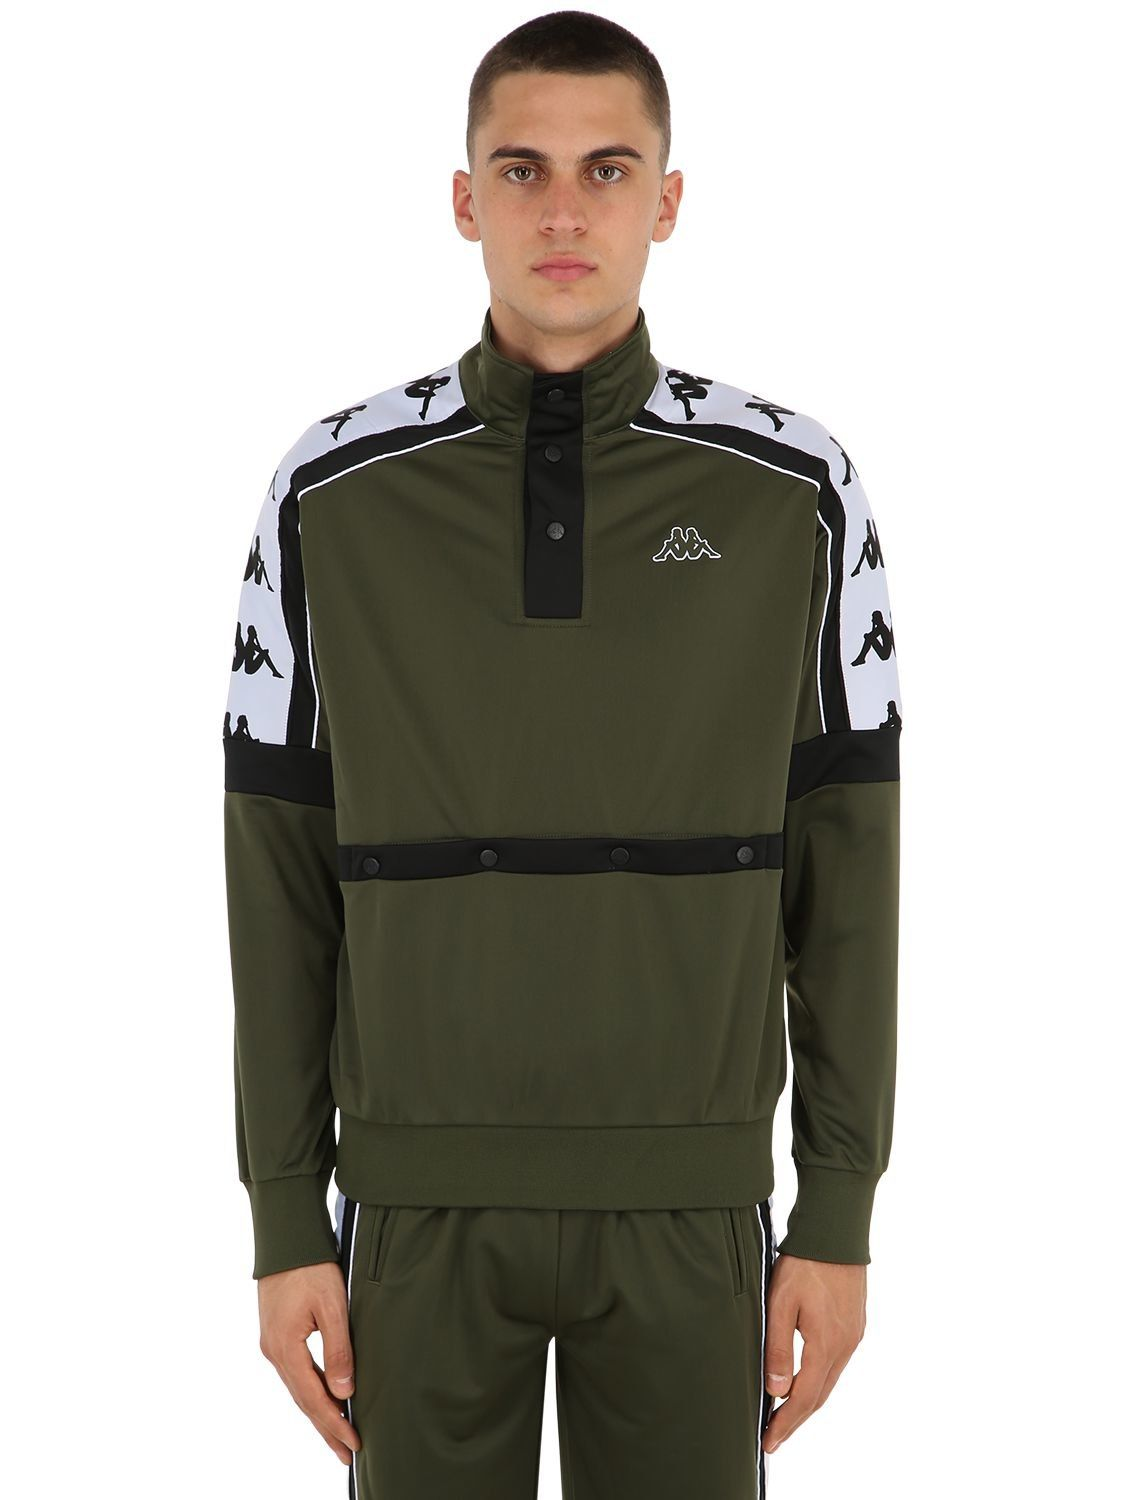 b0988aac1f KAPPA AUTHENTIC BANDA CLACK LIGHT JACKET. #kappa #cloth | Kappa | Light  jacket, Kappa, Jackets